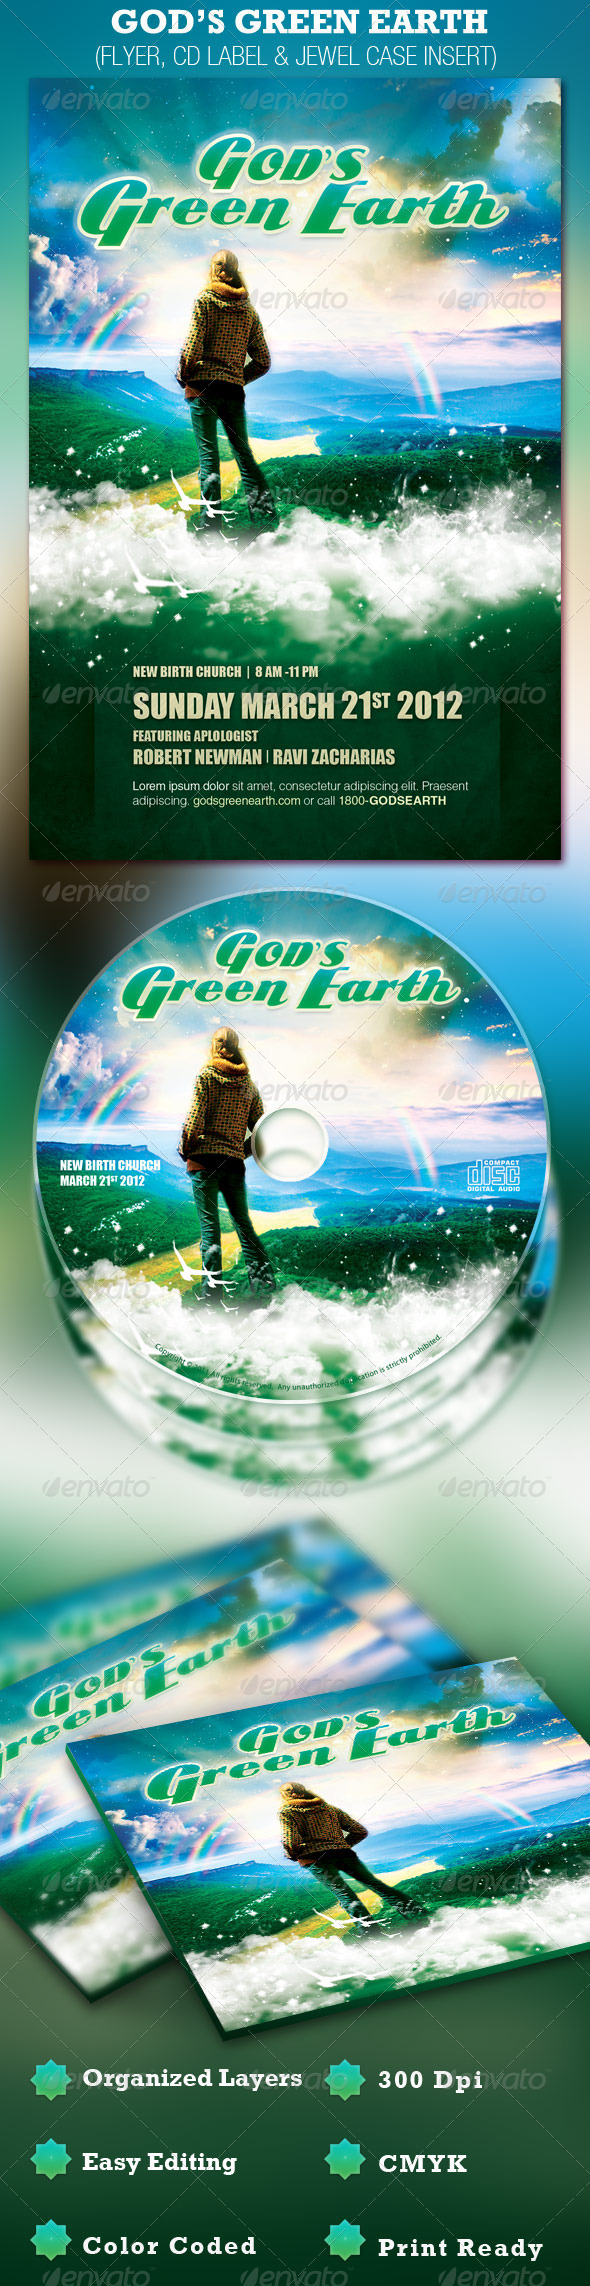 GraphicRiver God's Green Earth Church Flyer and CD Template 1243830